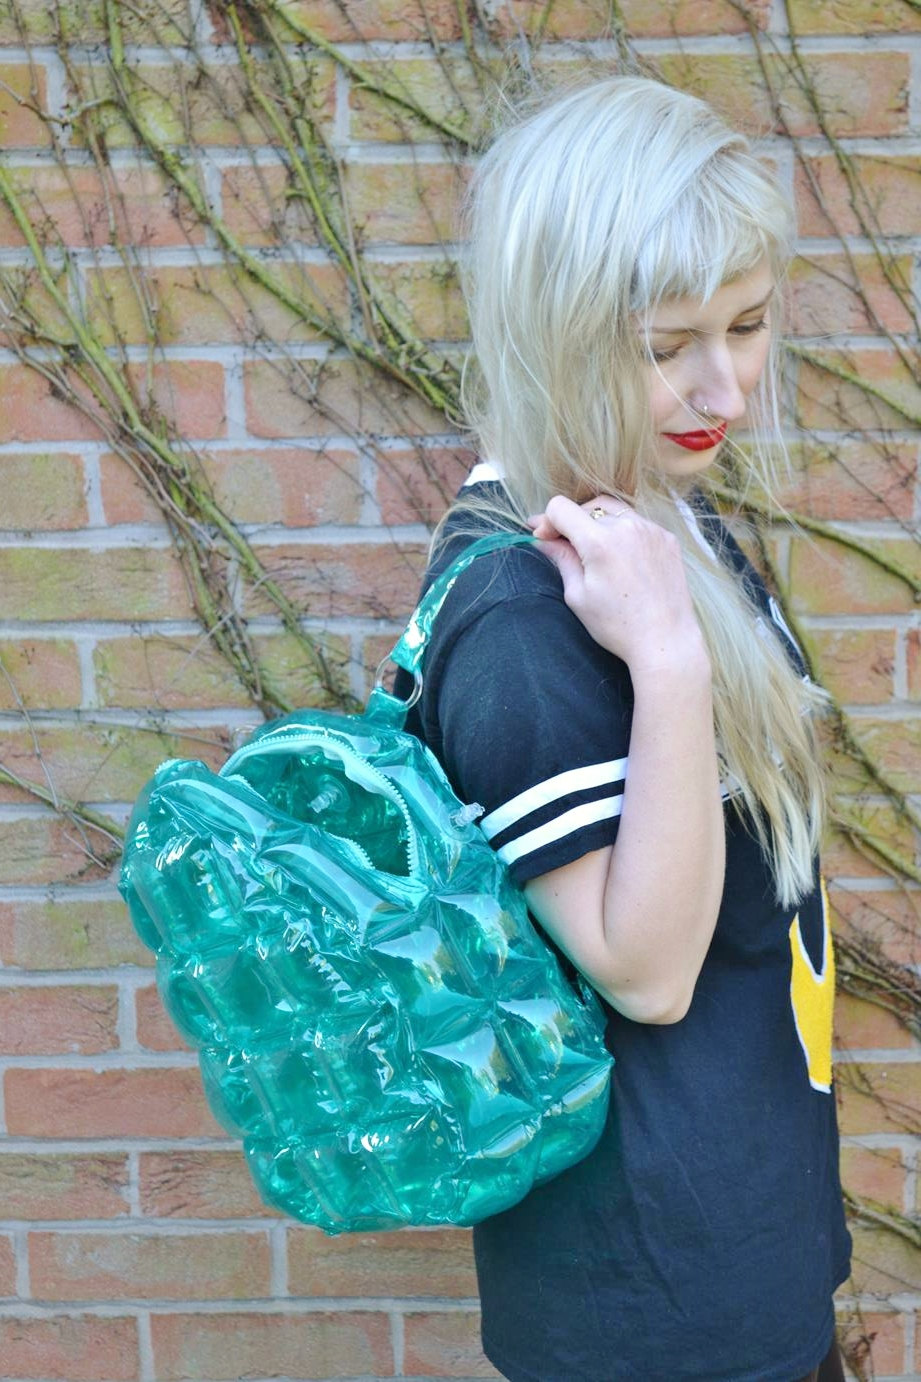 Green Turquoise 90s Club Kid See Through Clear Plastic Blow Up Inflatable Bubble Bag Rucksack Backpack